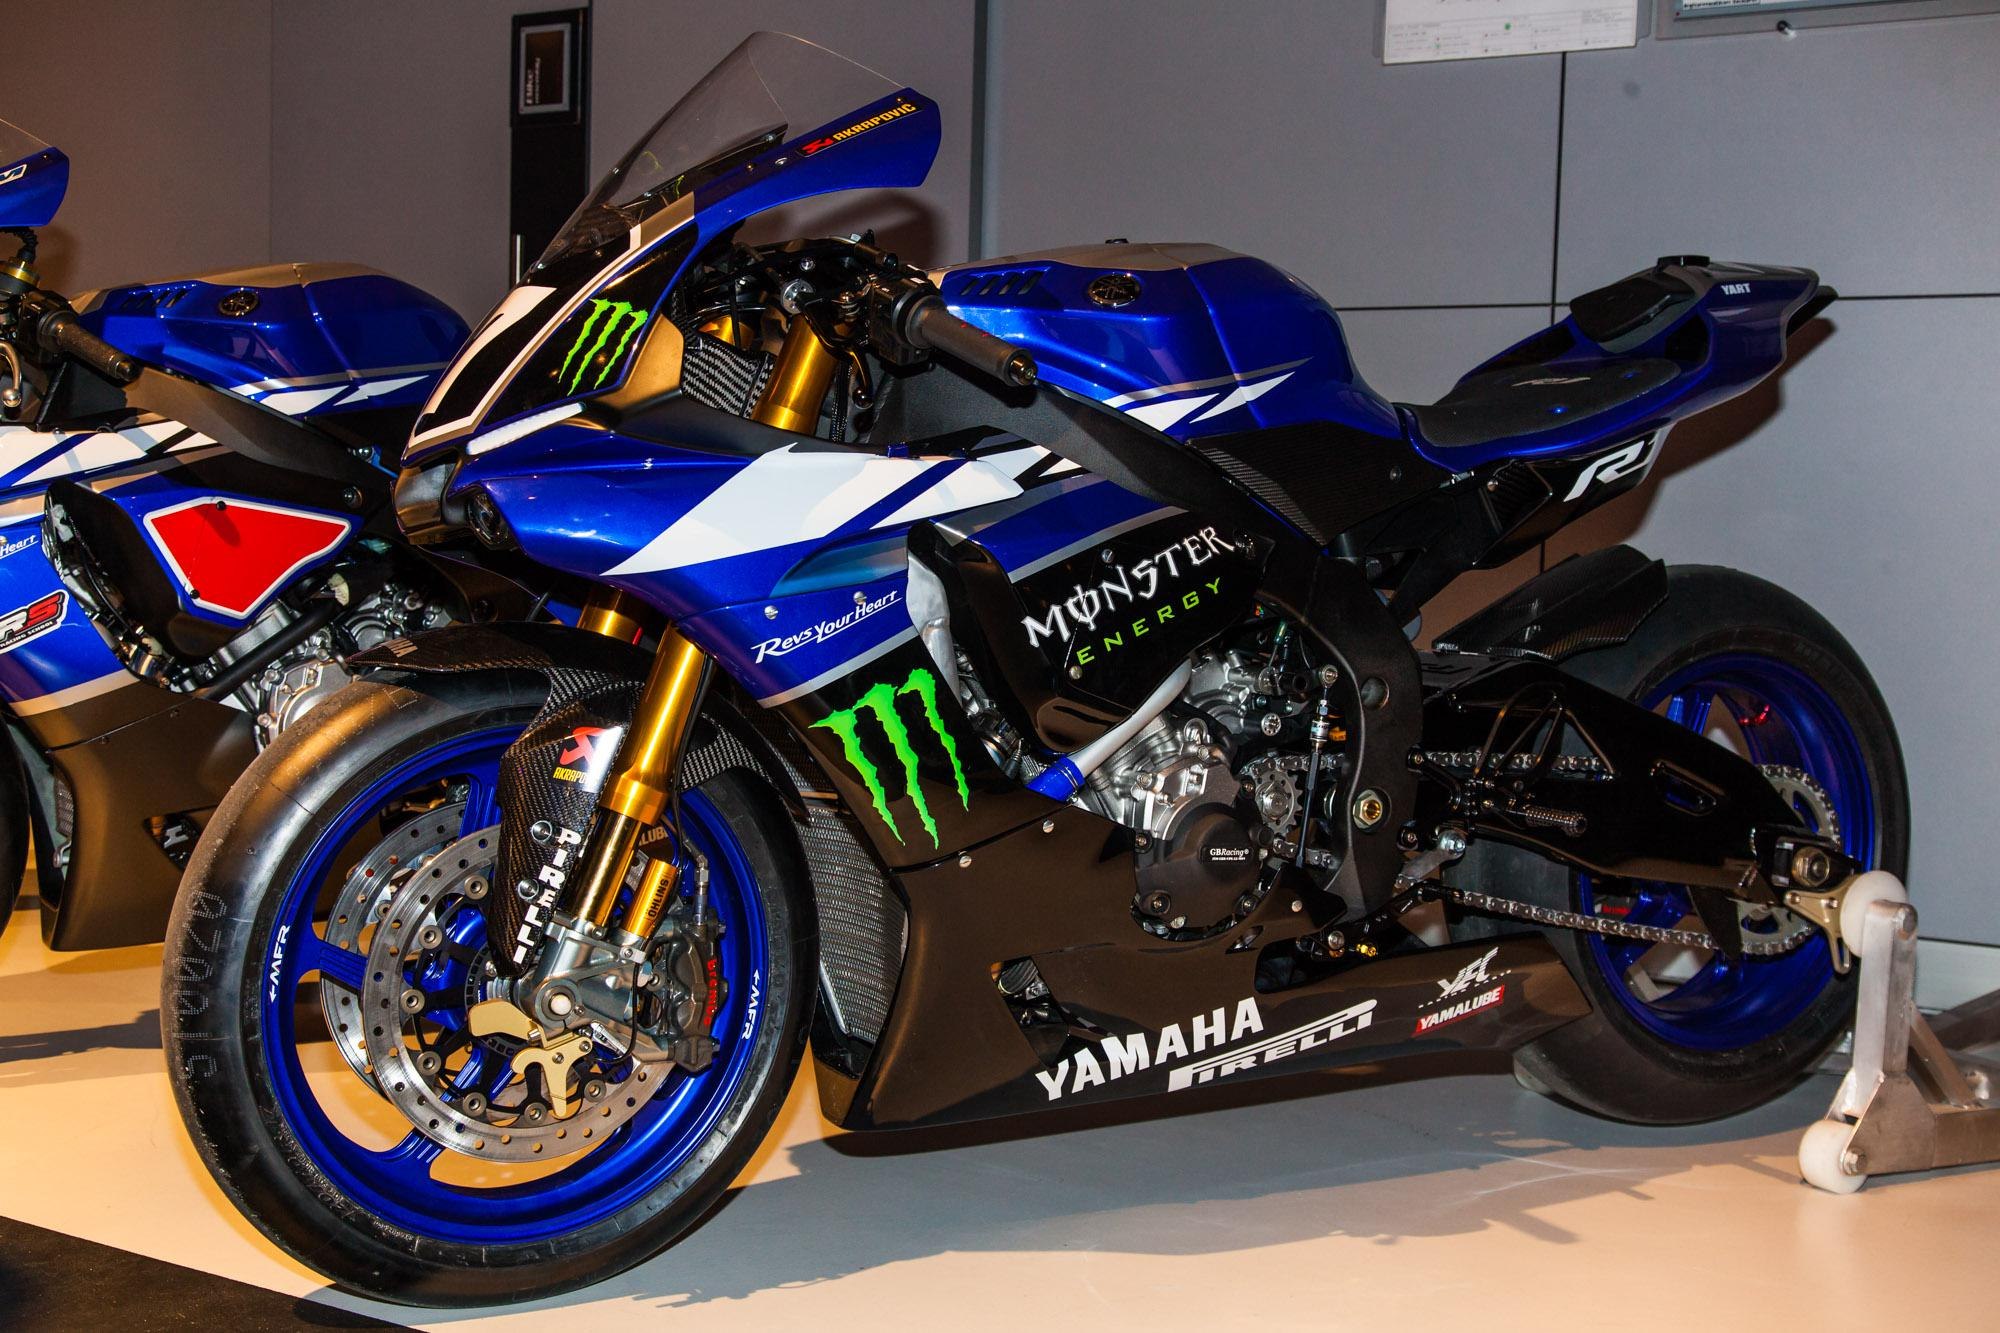 yamaha yzf r1 factory racing teams 2015 motorrad fotos motorrad bilder. Black Bedroom Furniture Sets. Home Design Ideas